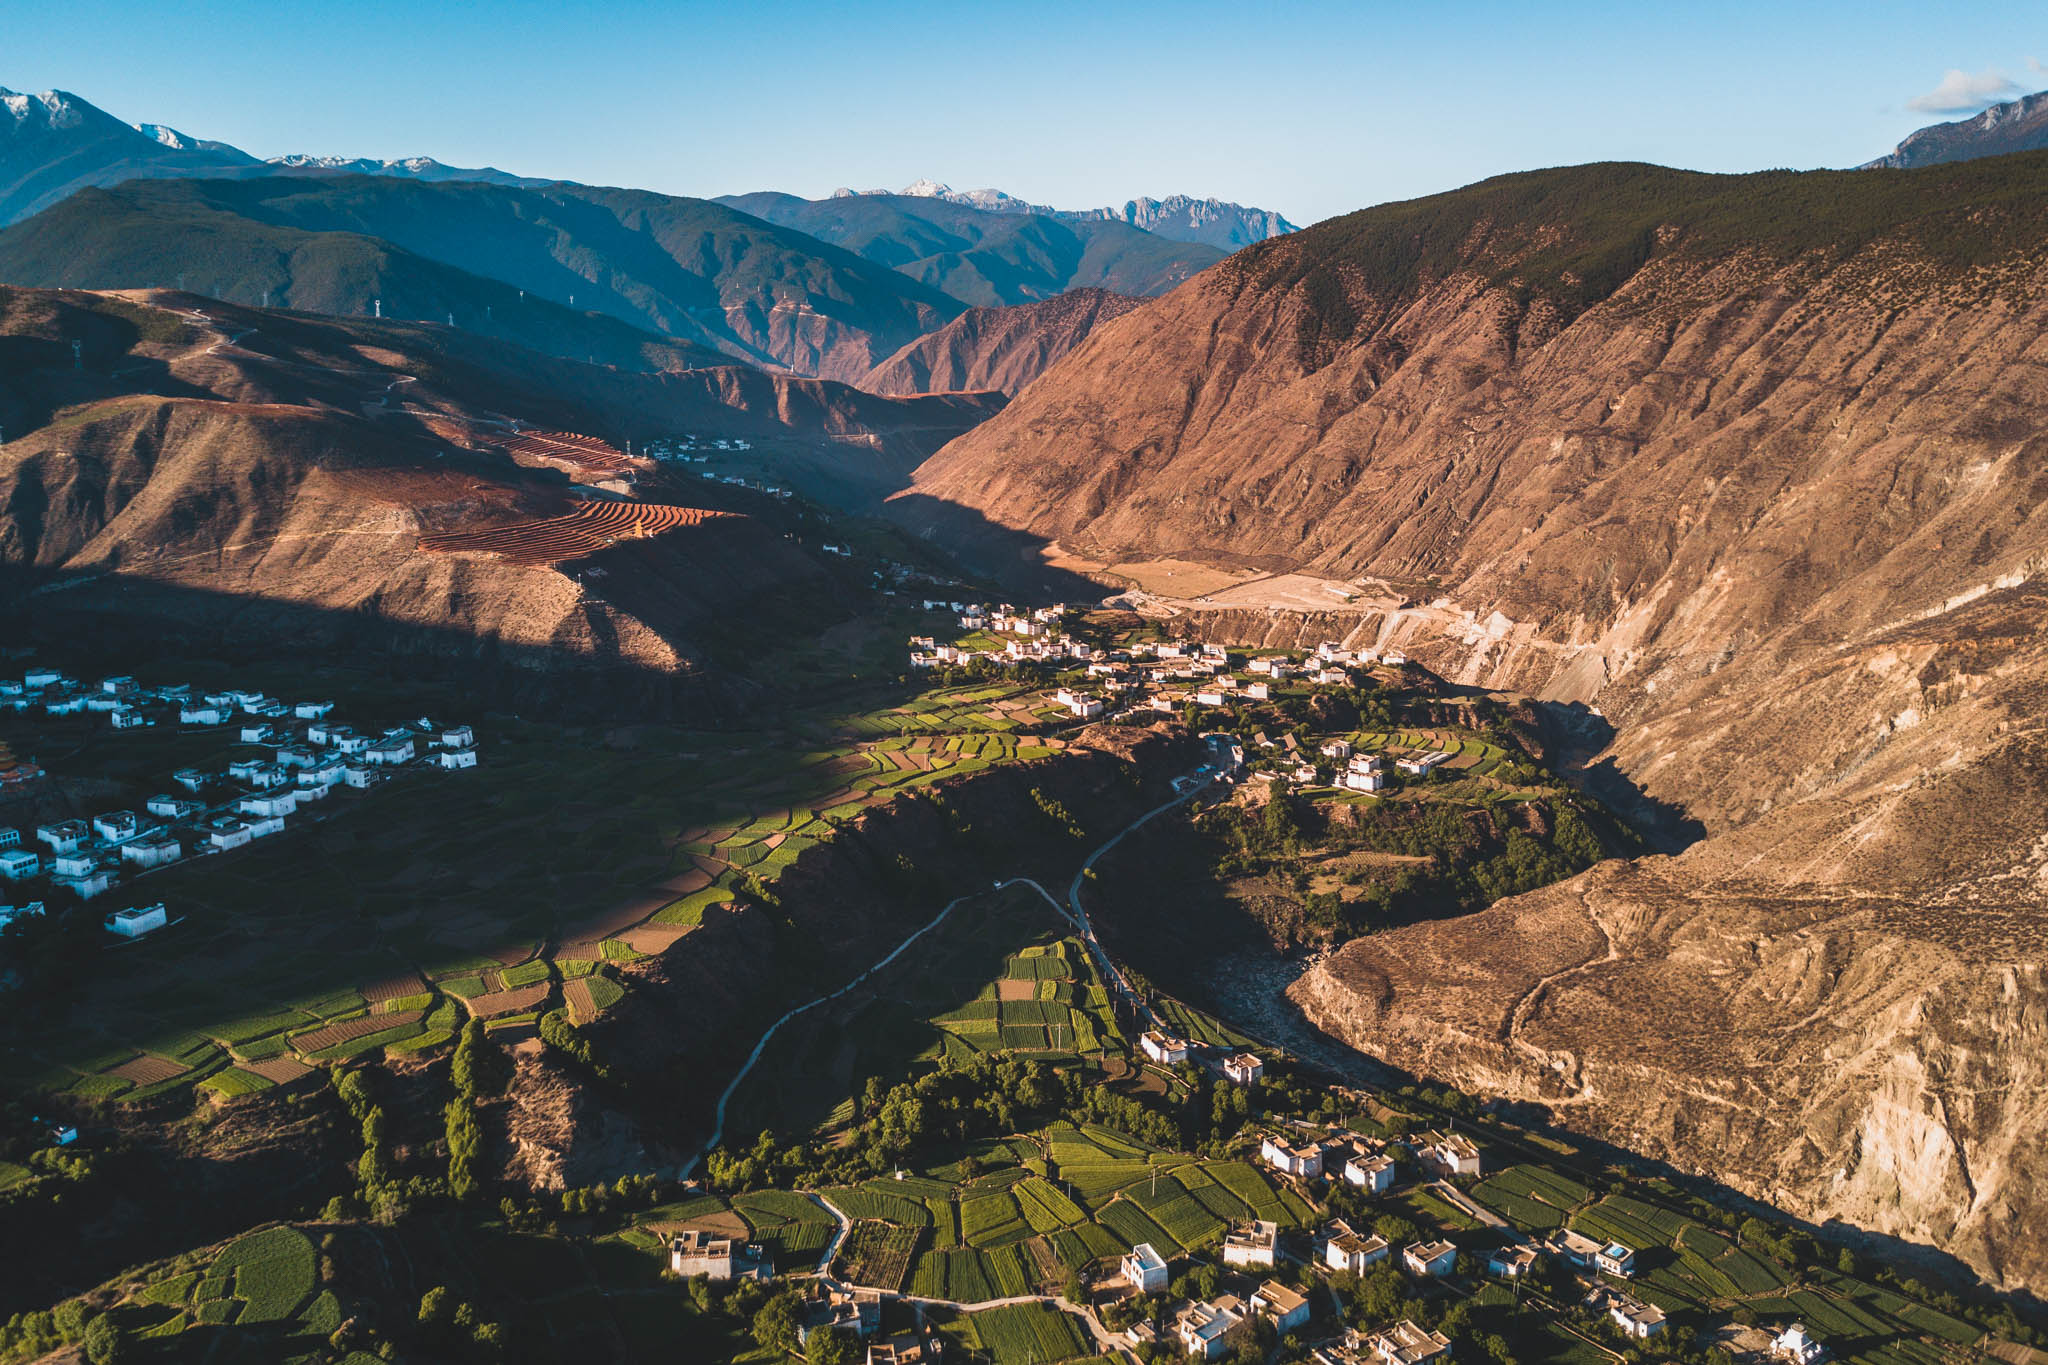 Drone shot of the surrounding mountains